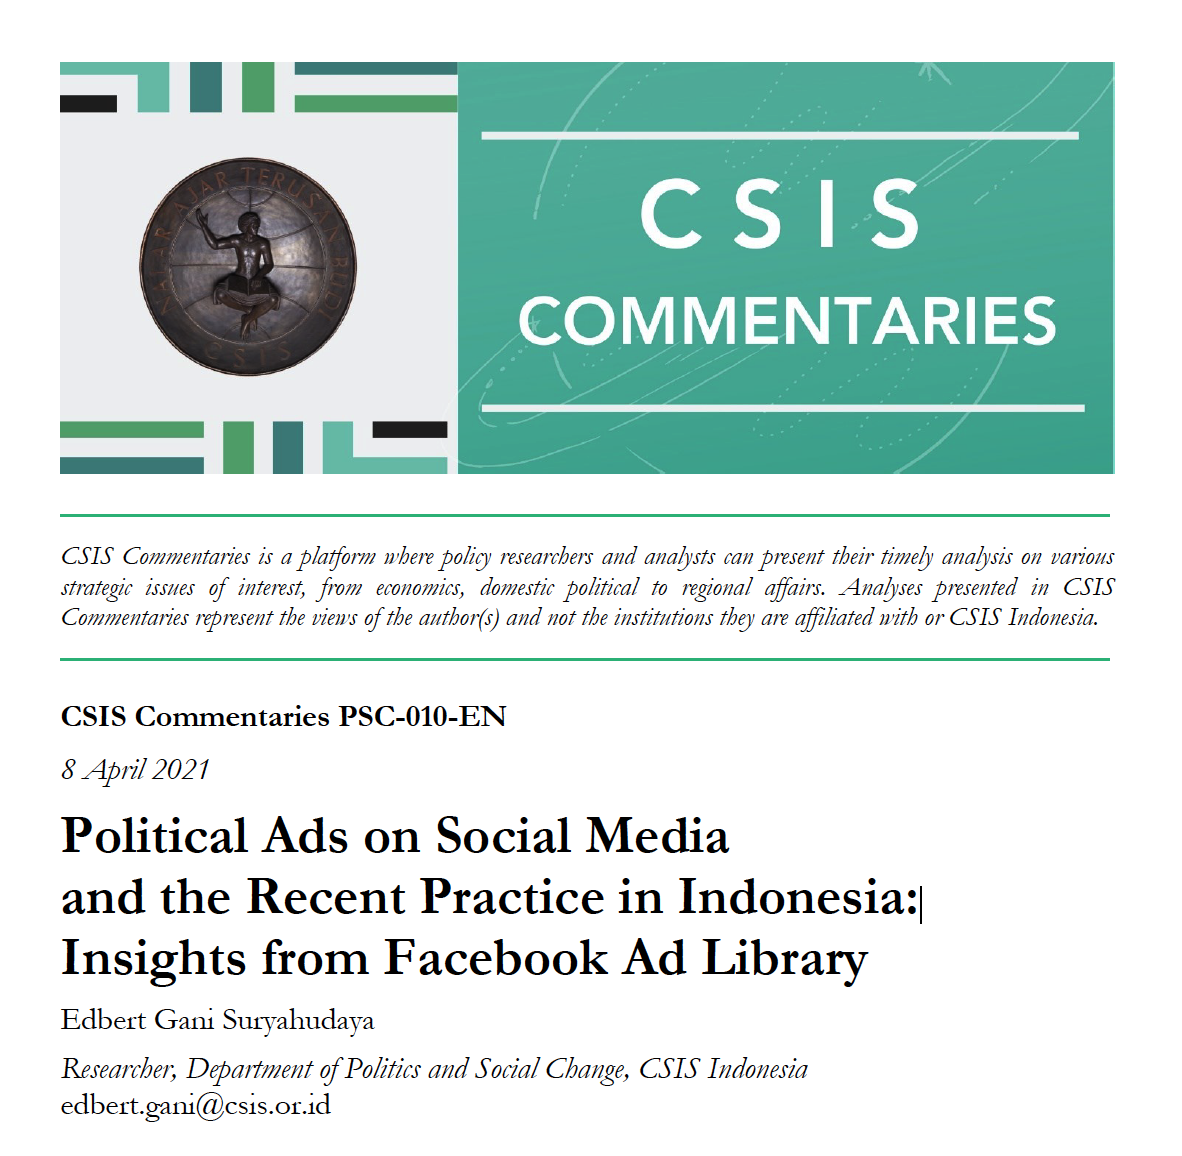 Political Ads on Social Media and the Recent Practice in Indonesia: Insights from Facebook Ad Library